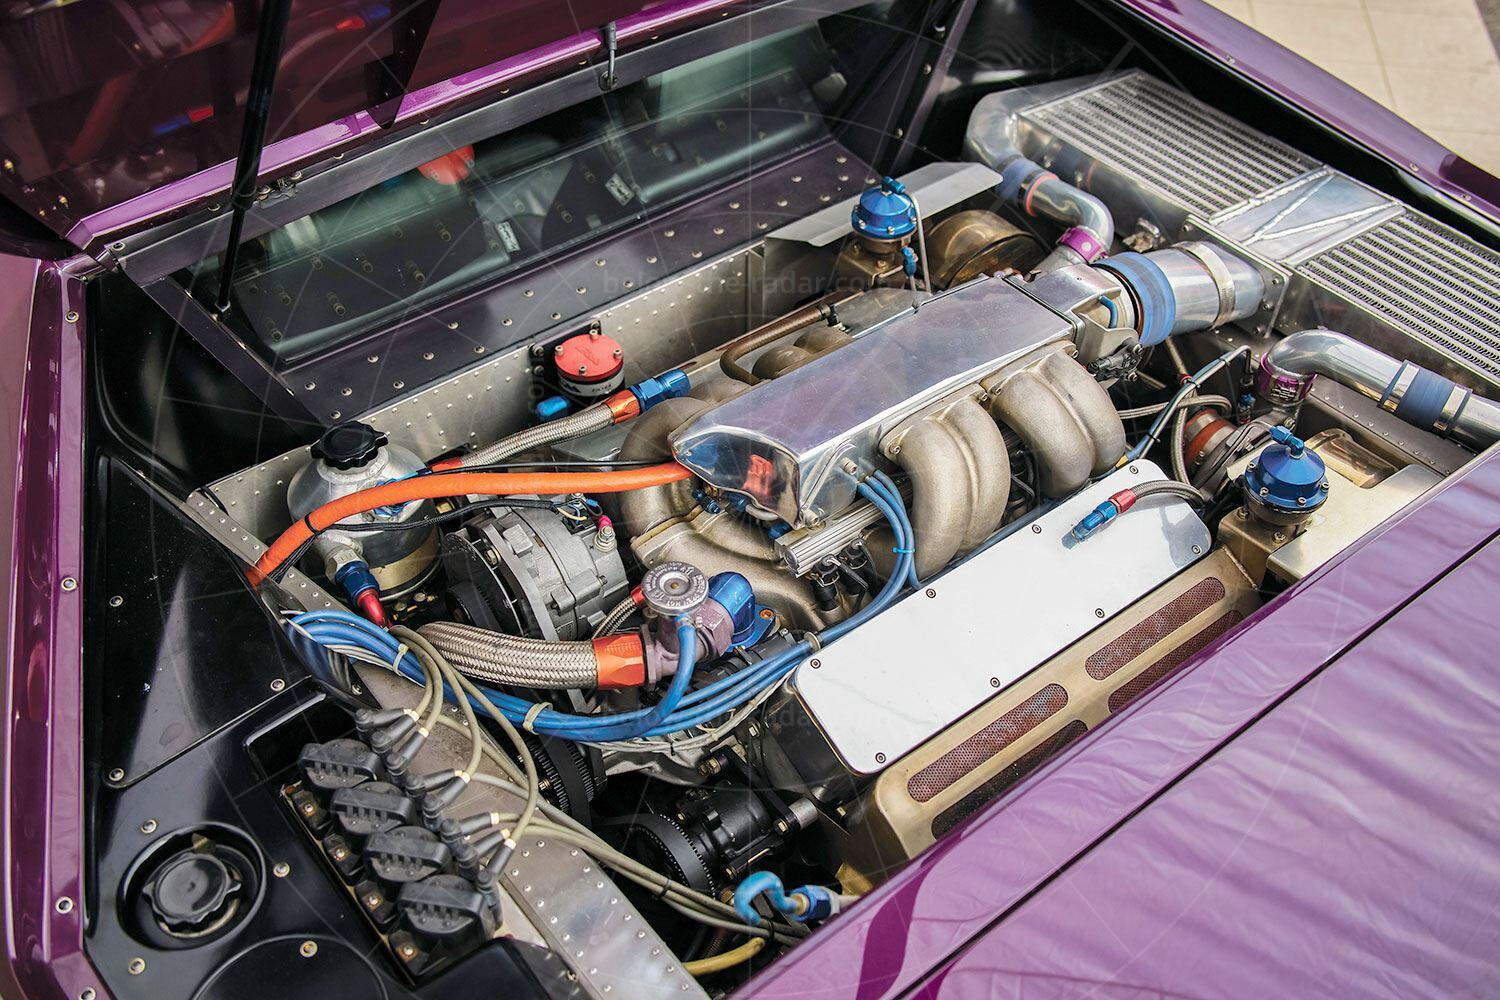 Vector W8 engine bay Pic: RM Sotheby's   Vector W8 engine bay